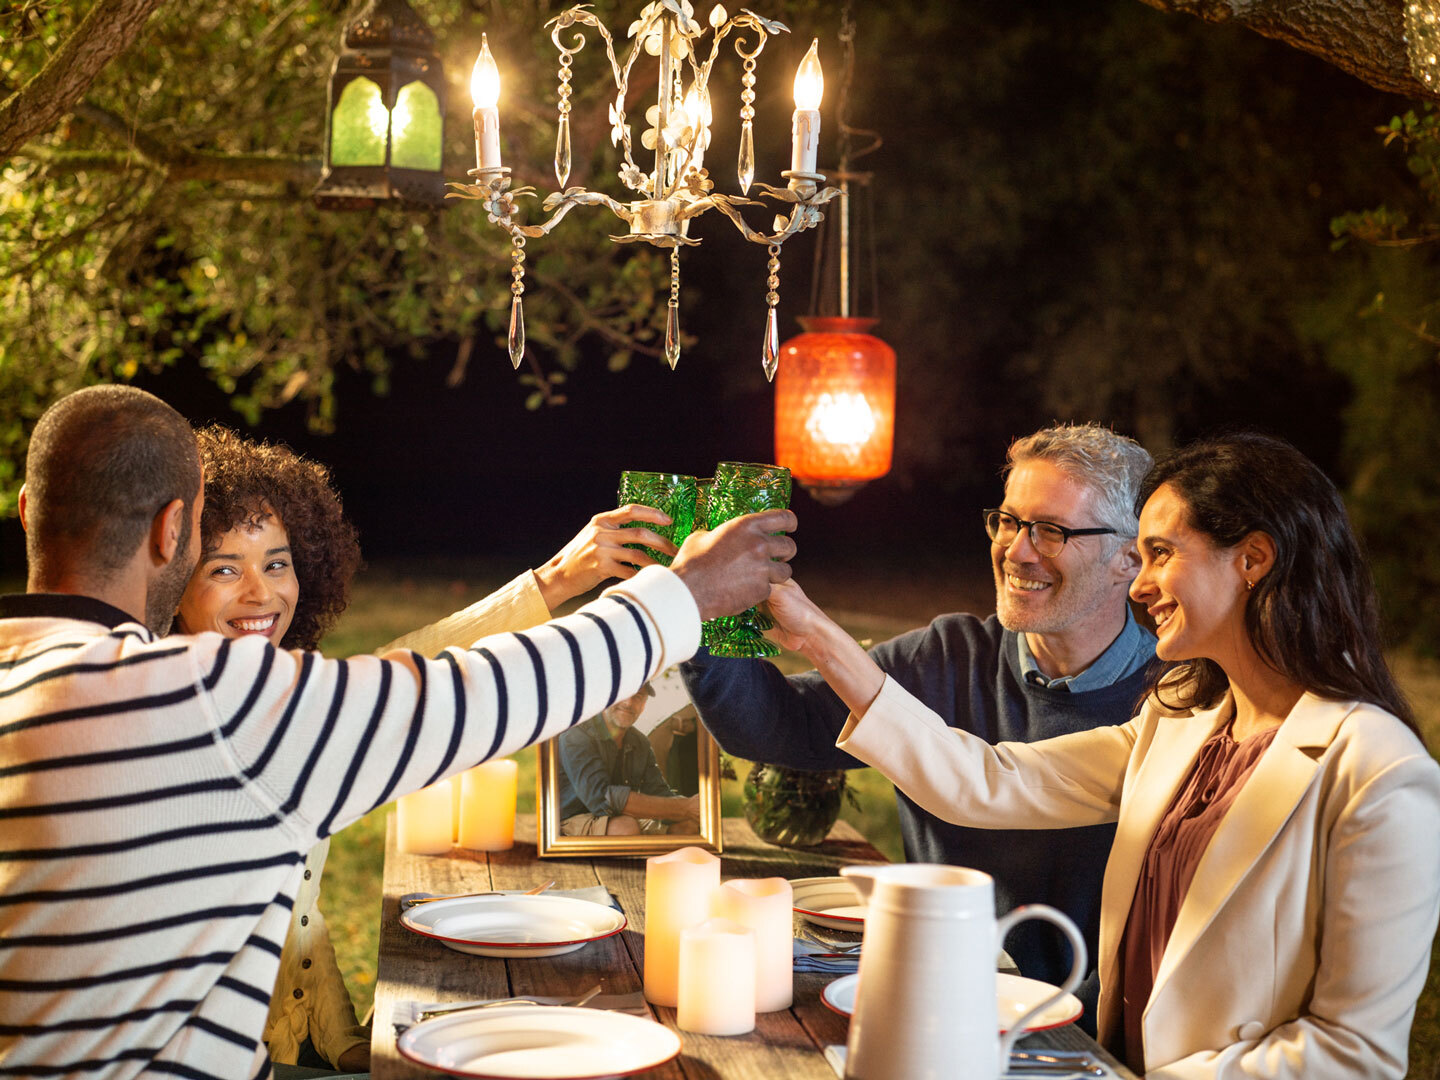 people toasting in celebration of remembrance at a picnic table outdoors at night